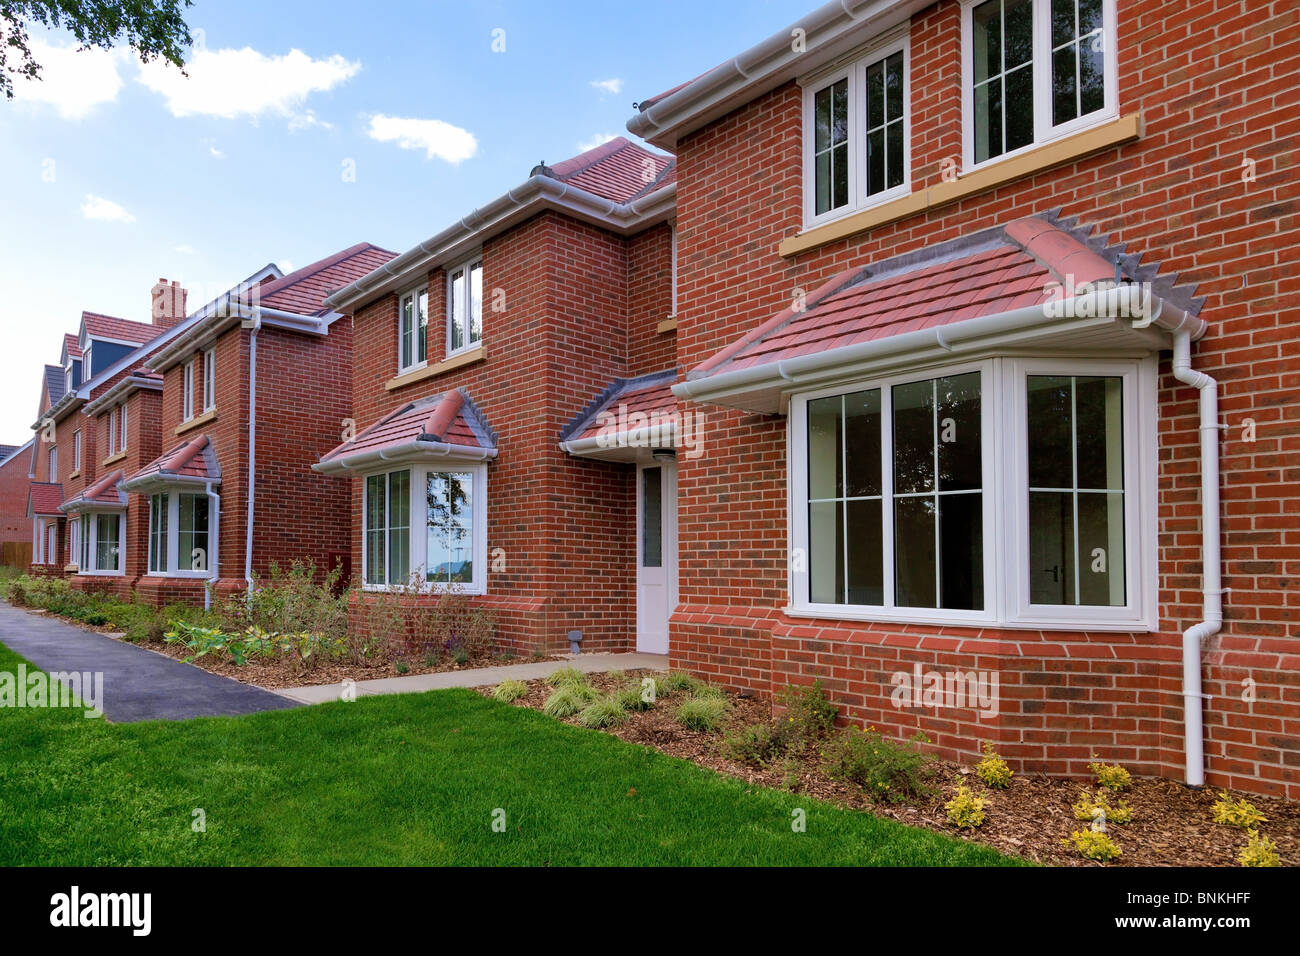 Photo of a row of brand new empty houses for sale on a housing development. - Stock Image